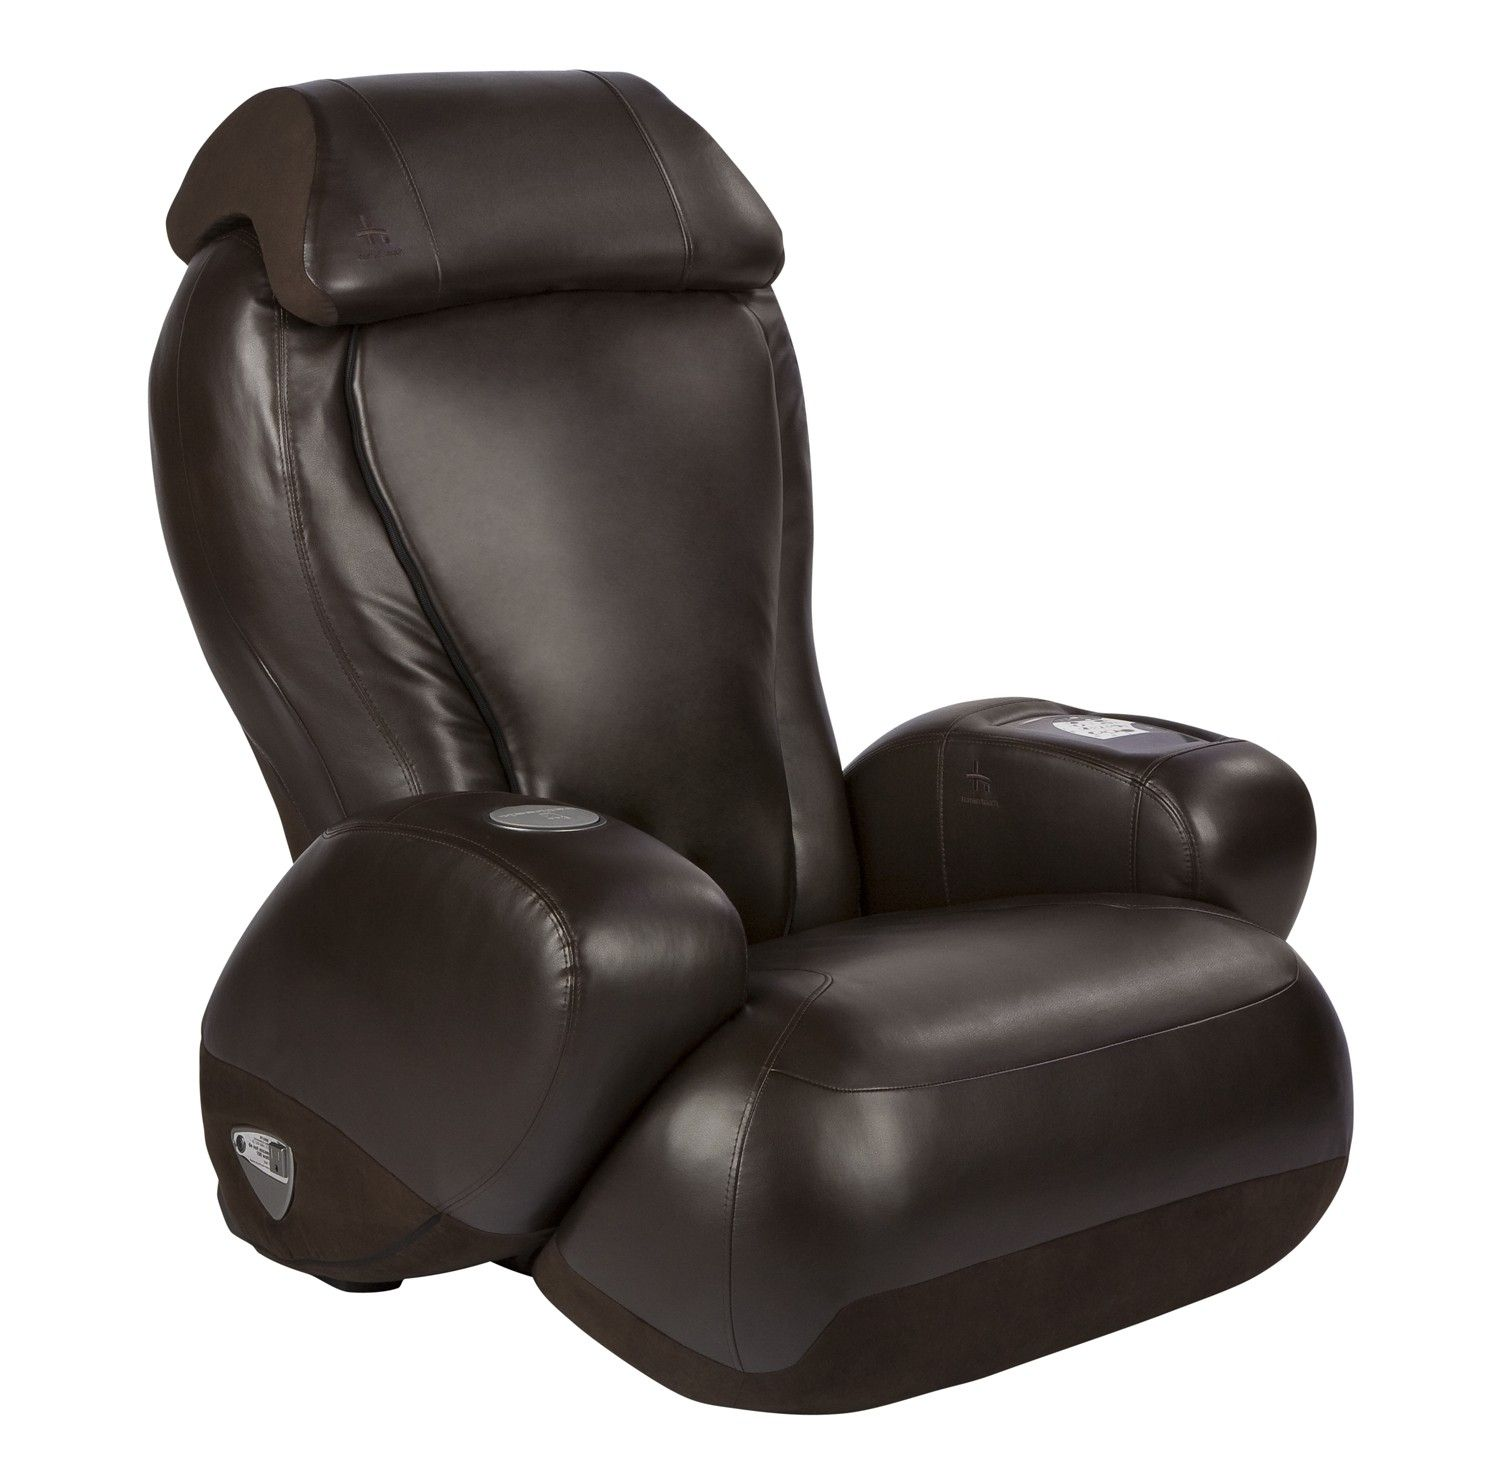 Ijoy Massage Chair Slipcover